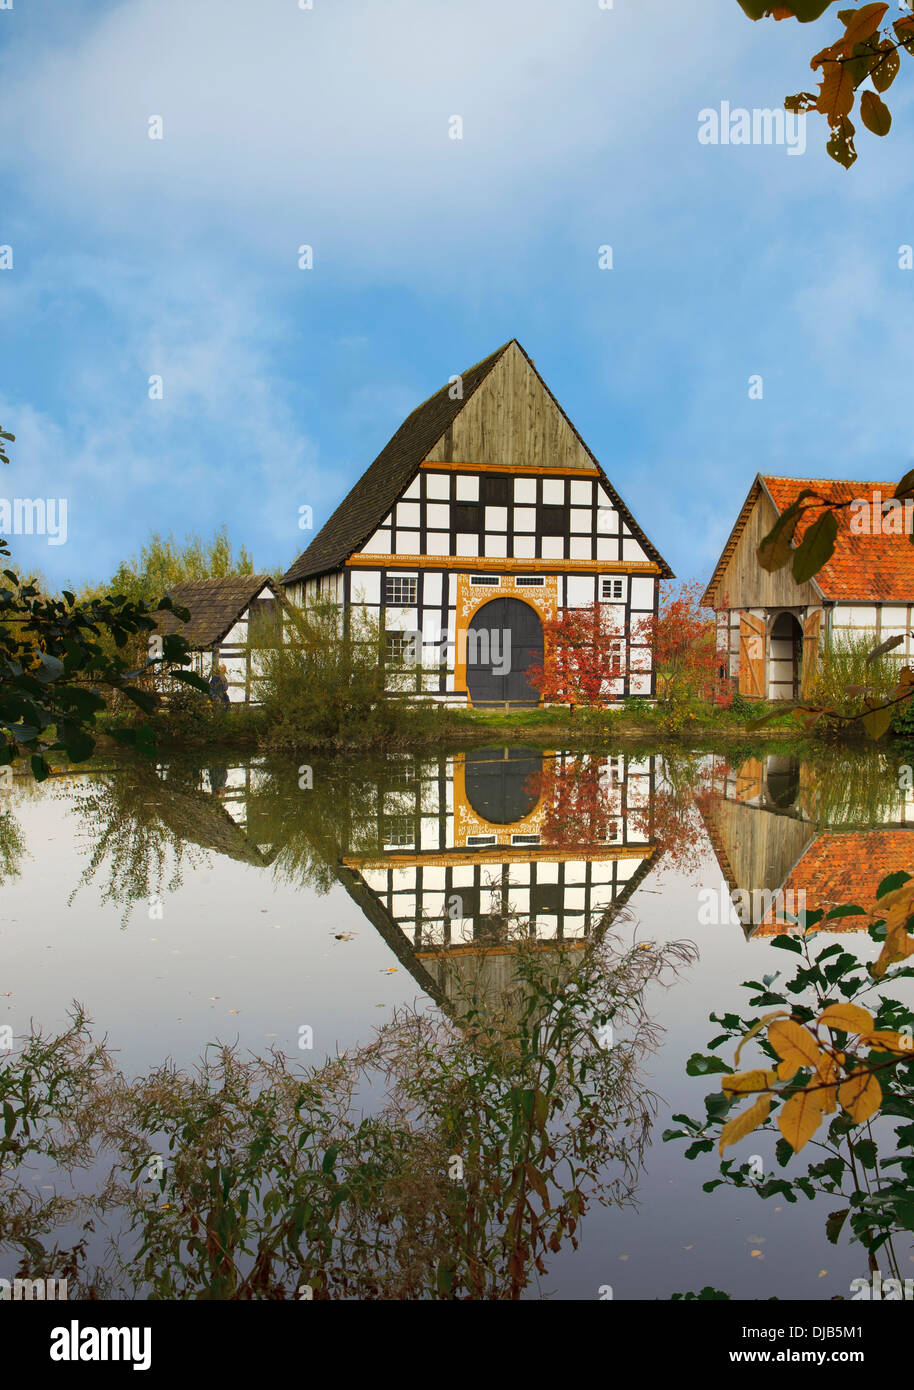 Village pond with an old half-timbered house from the 17th century, in autumn, Freilichtmuseum Detmold or Open-Air Museum - Stock Image